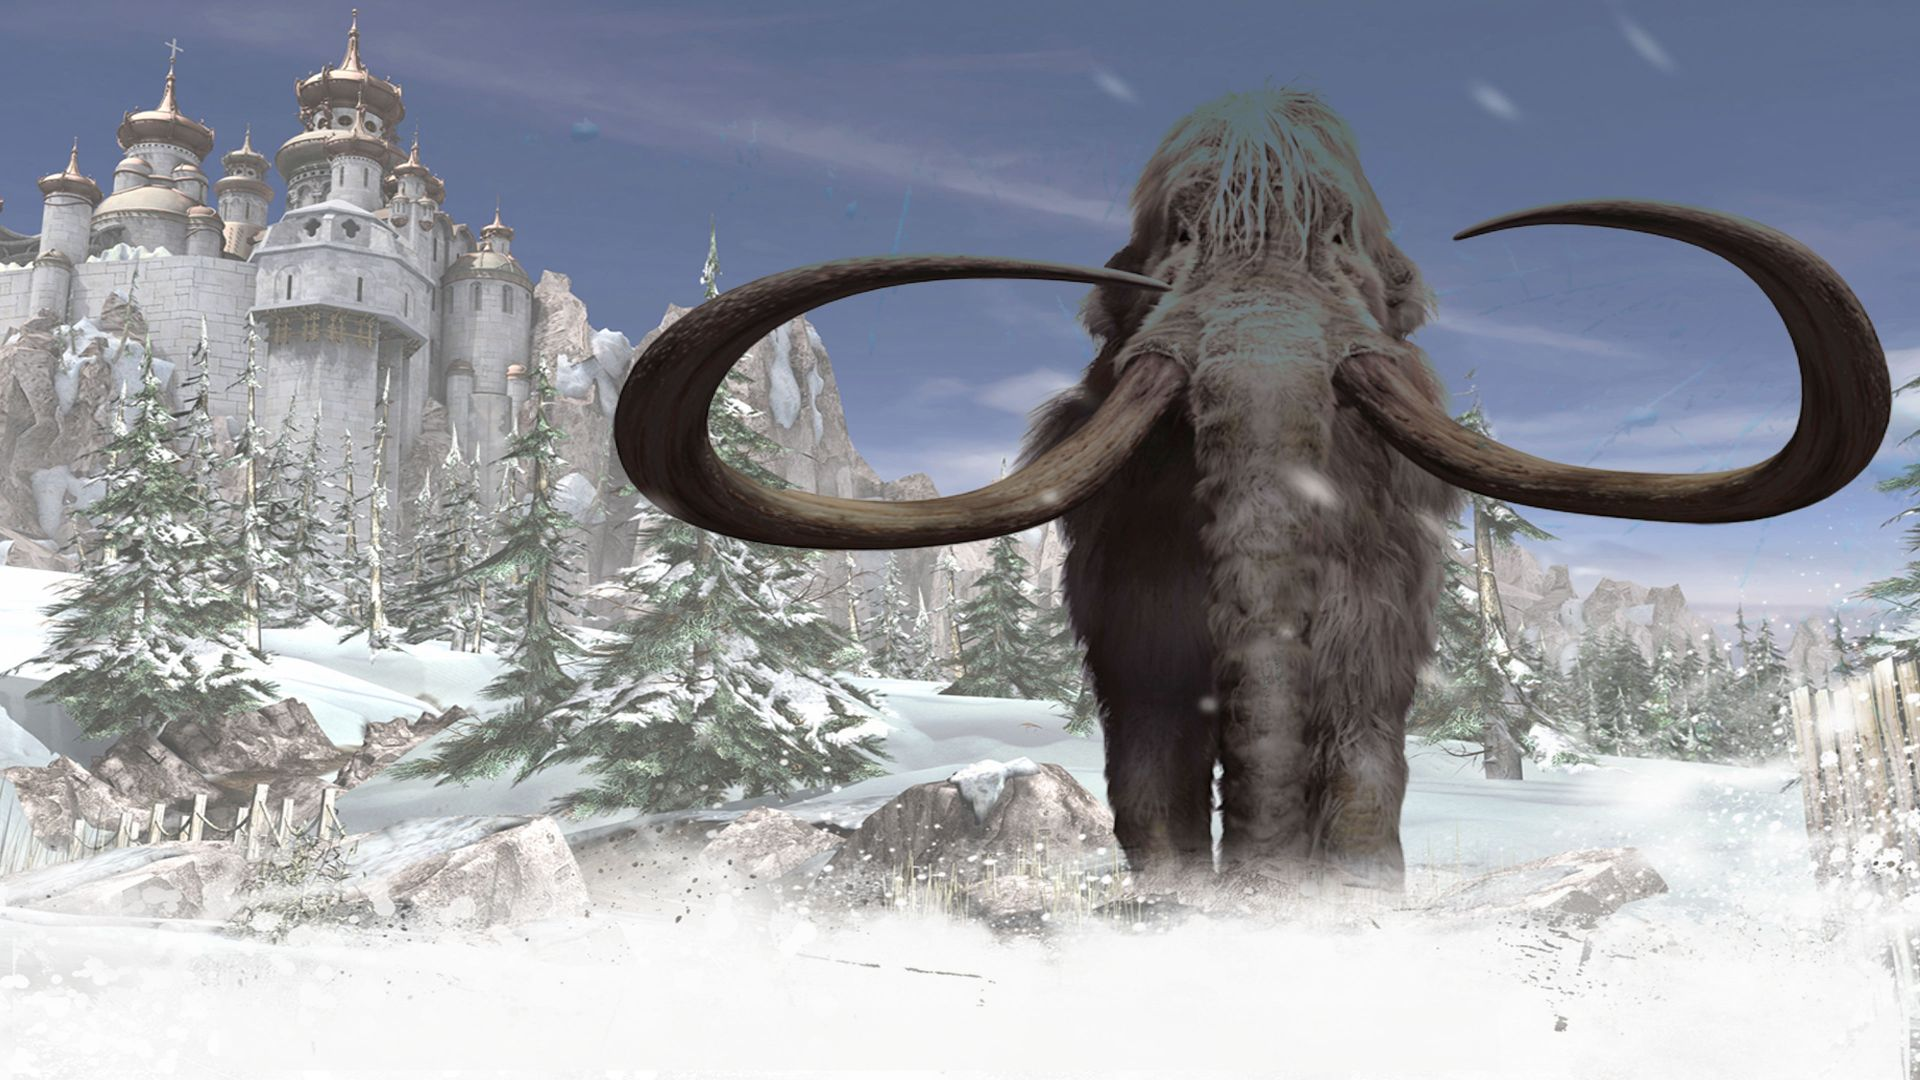 Syberia II Free for a limited time